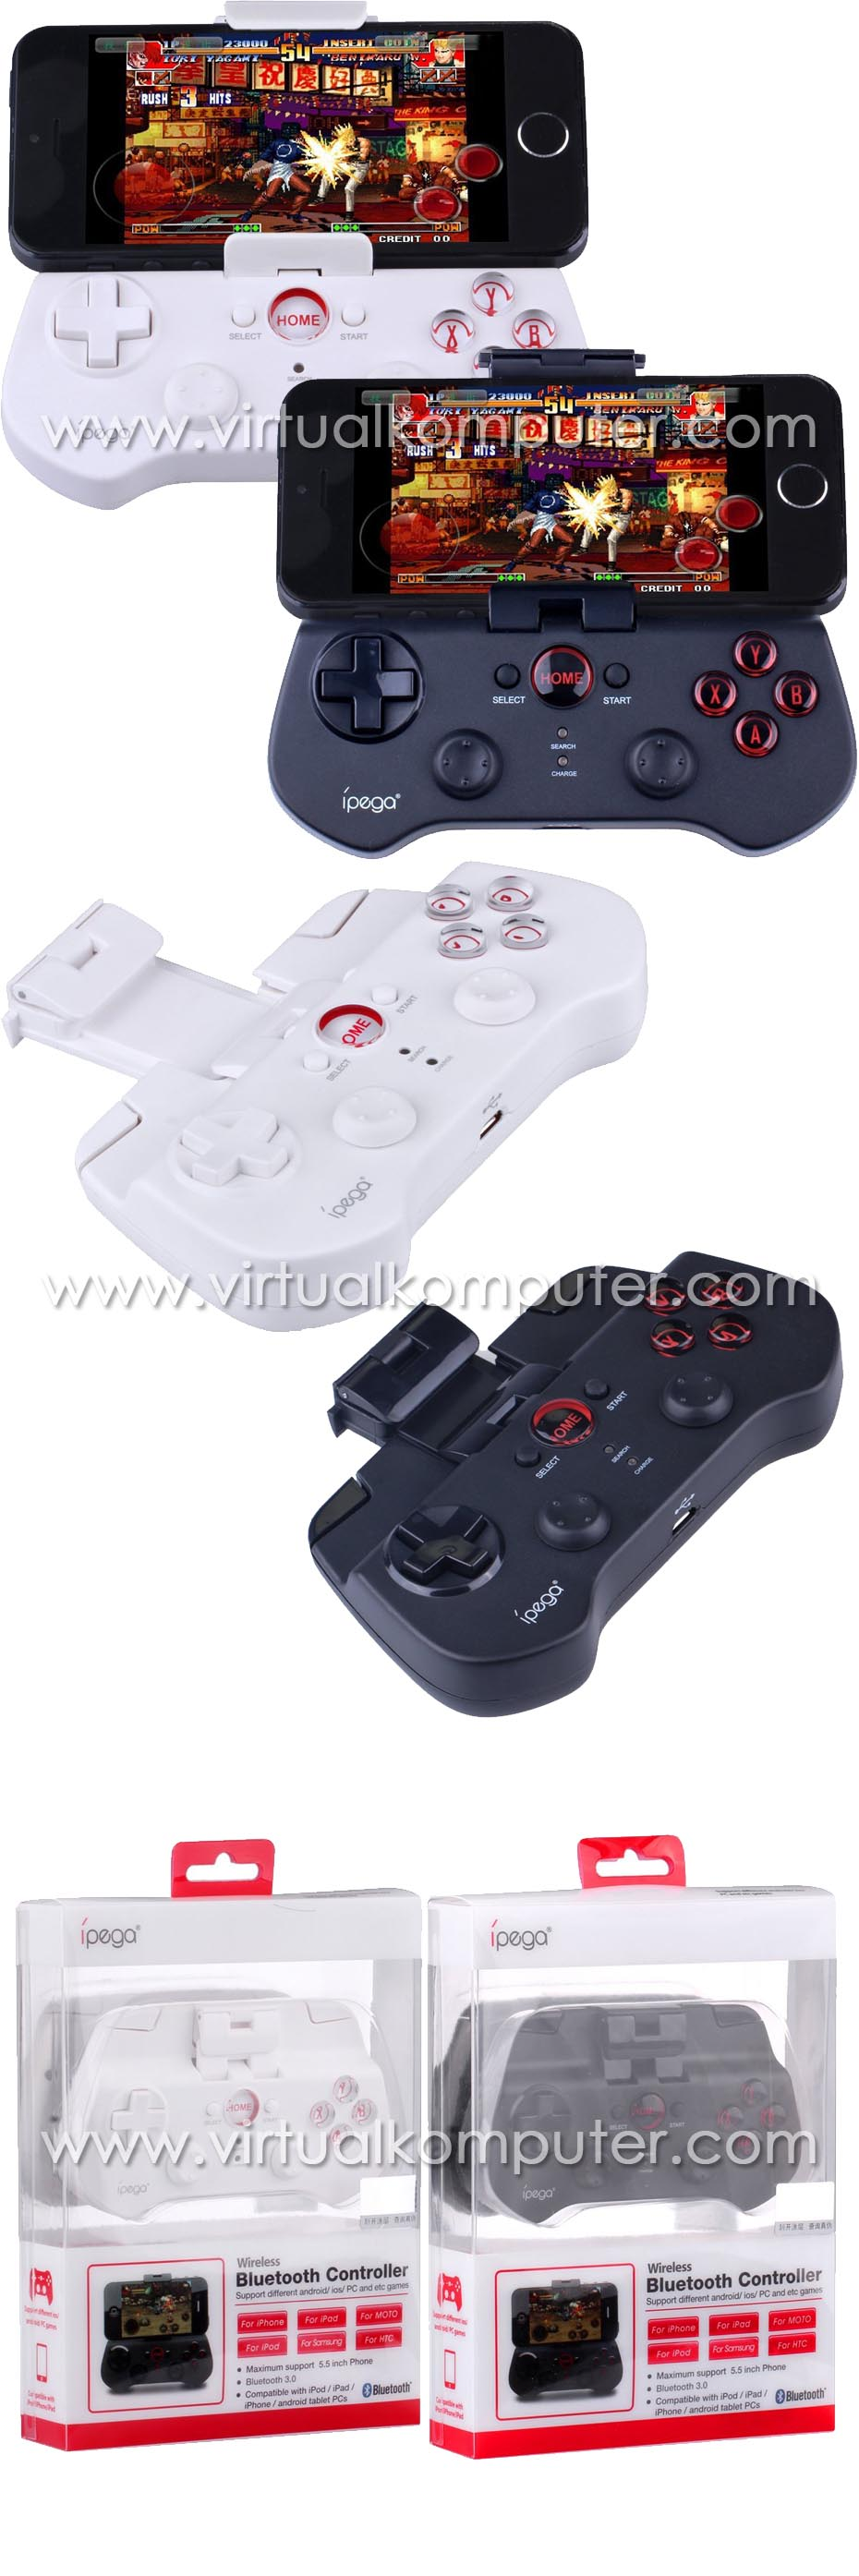 Ipega Bluetooth Controller PG-9017s Overview